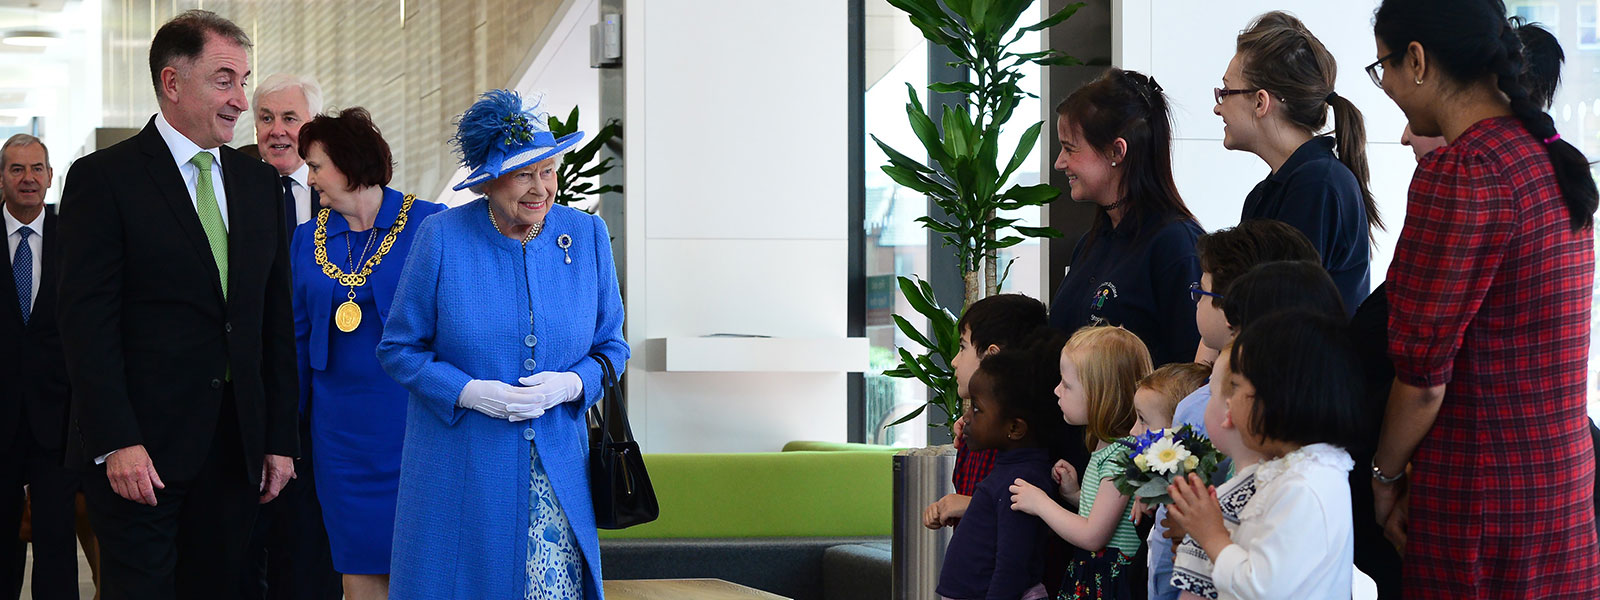 Principal, Professor Sir Jim McDonald introduces The Queen to members of Strathclyde's creche.